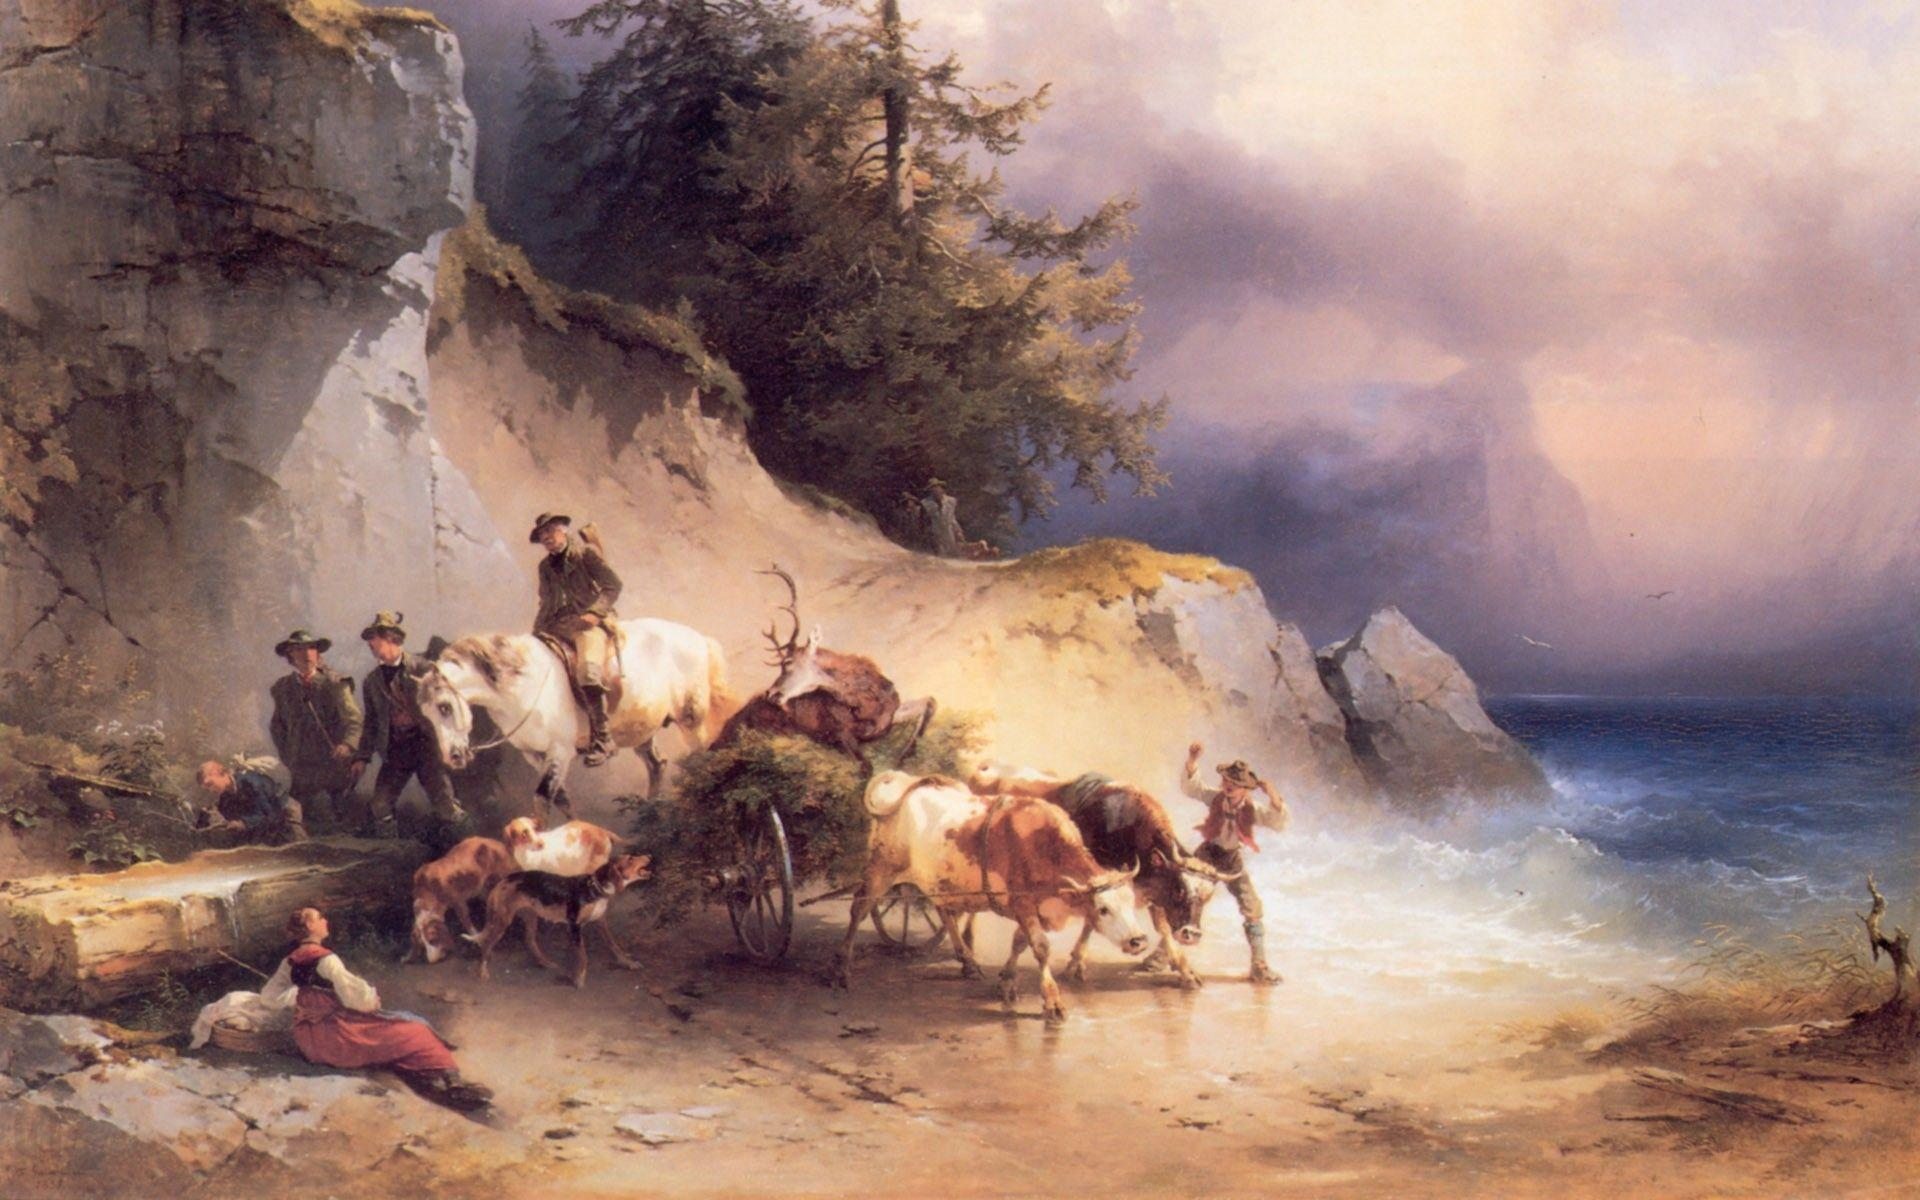 Rural Activity Art World Famous Paintings Wallpaper, iPhone